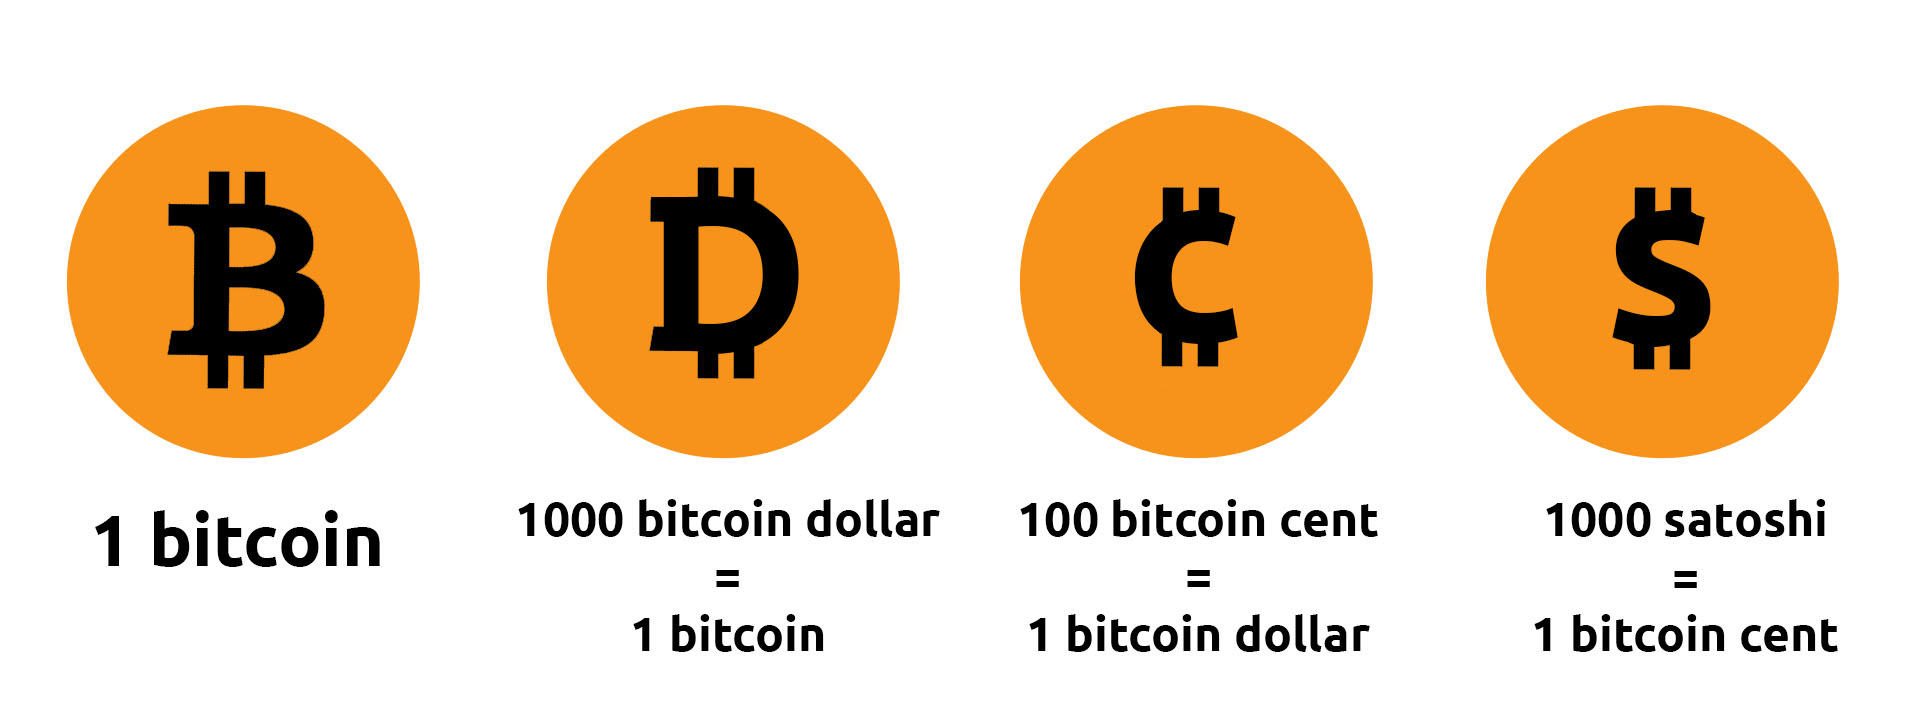 how much is 1000 bitcoins worth